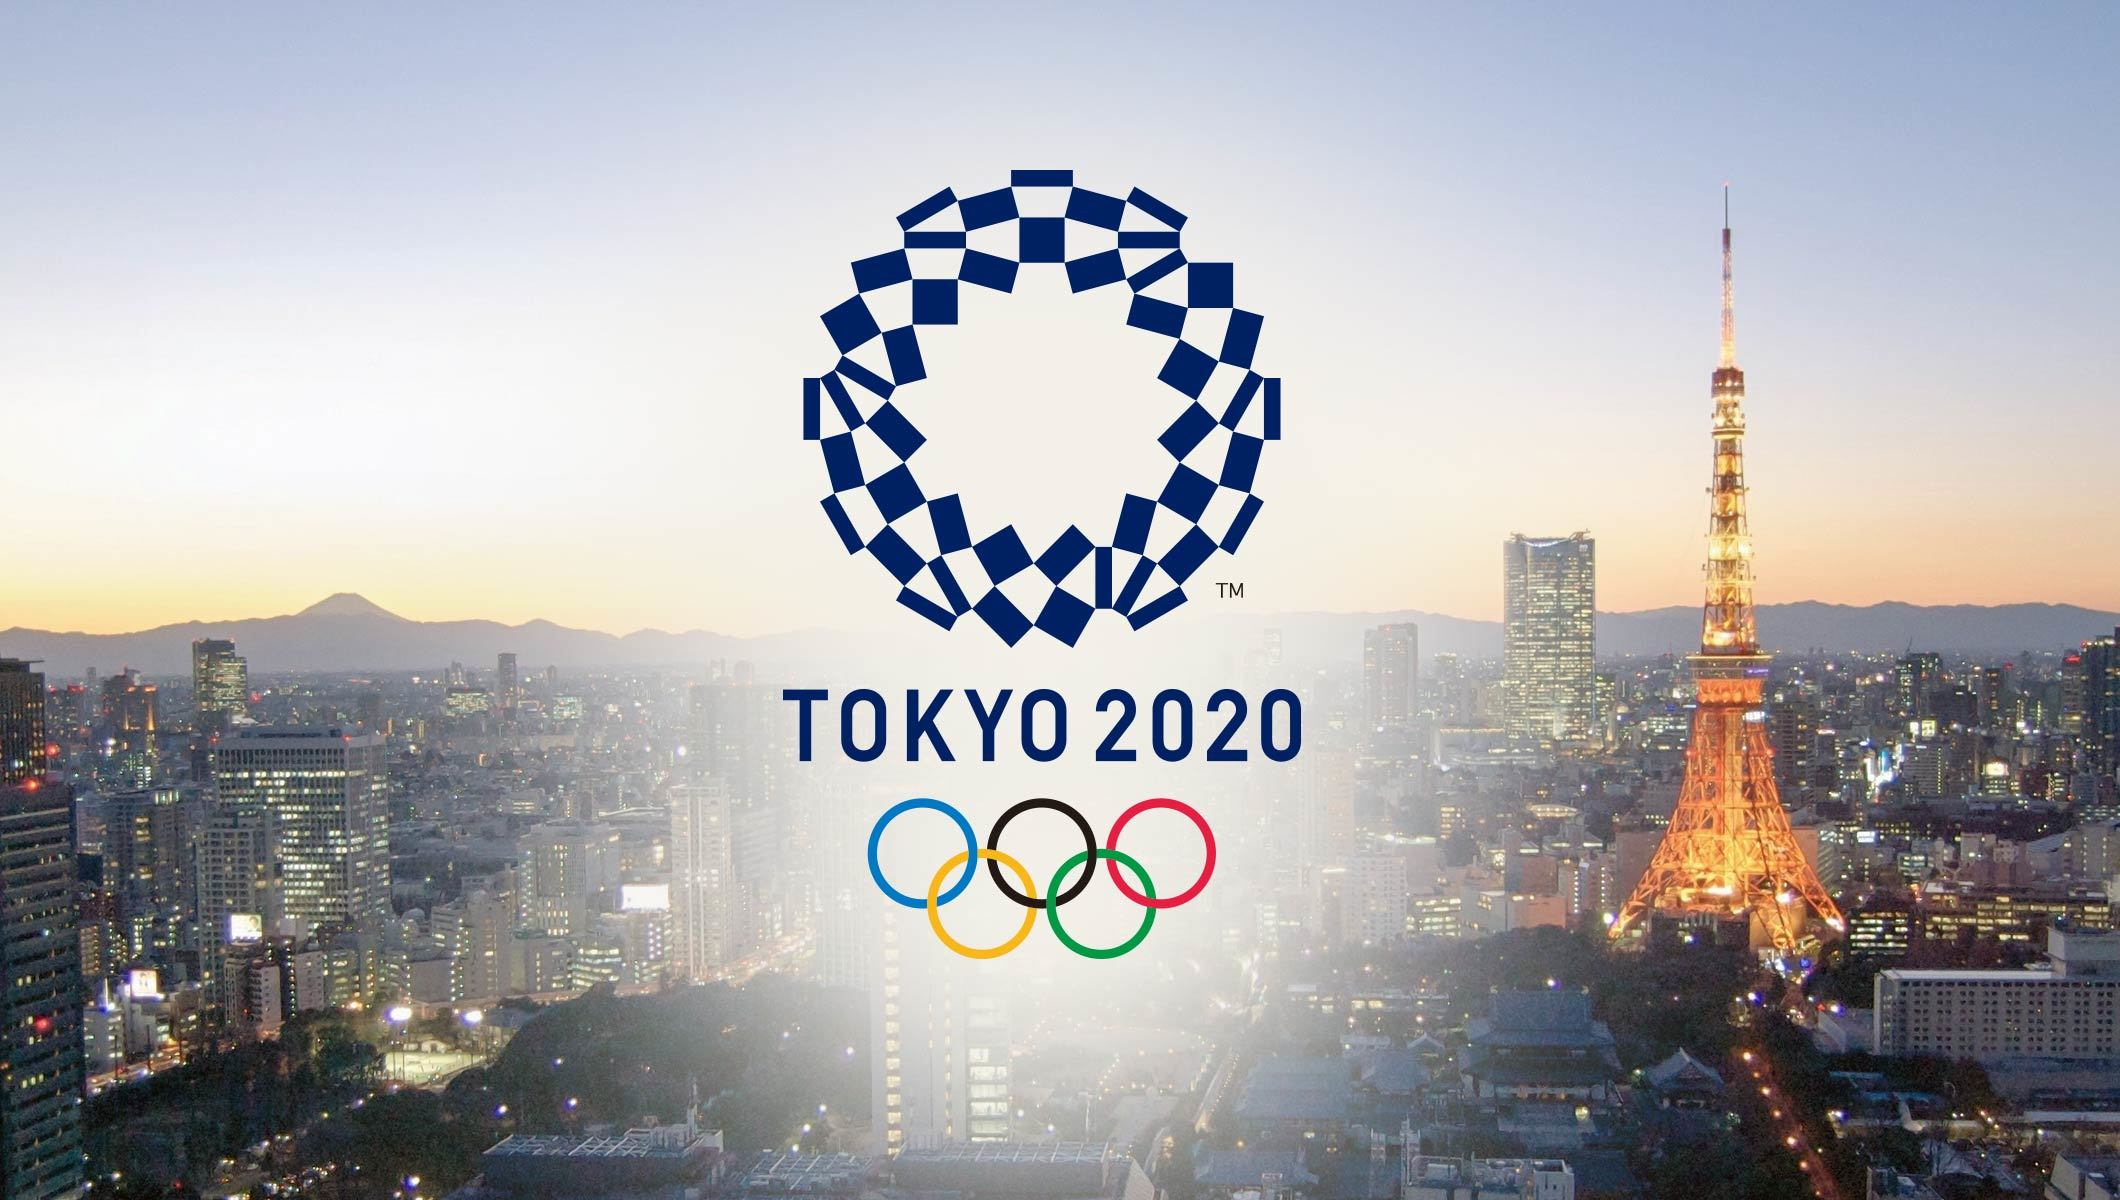 IOC ANTI-DOPING RULES – GAMES OF THE XXXII OLYMPIAD TOKYO 2020